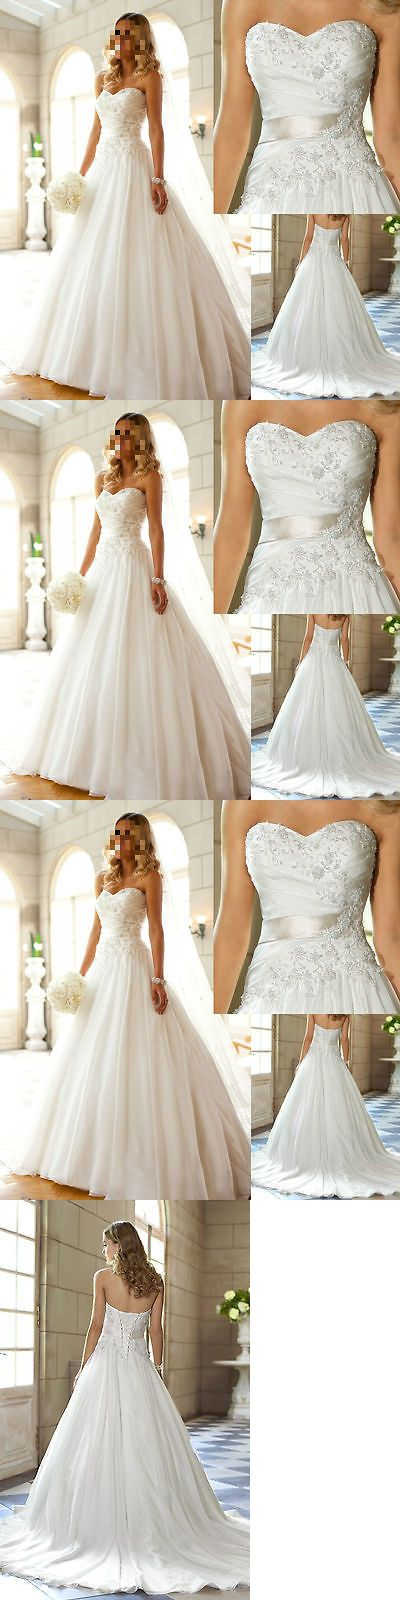 Wedding Dresses: New White Ivory Sweetheart Wedding Dress Bridal Gown Size 6-8-10-12-14-16-18 -> BUY IT NOW ONLY: $75 on eBay!